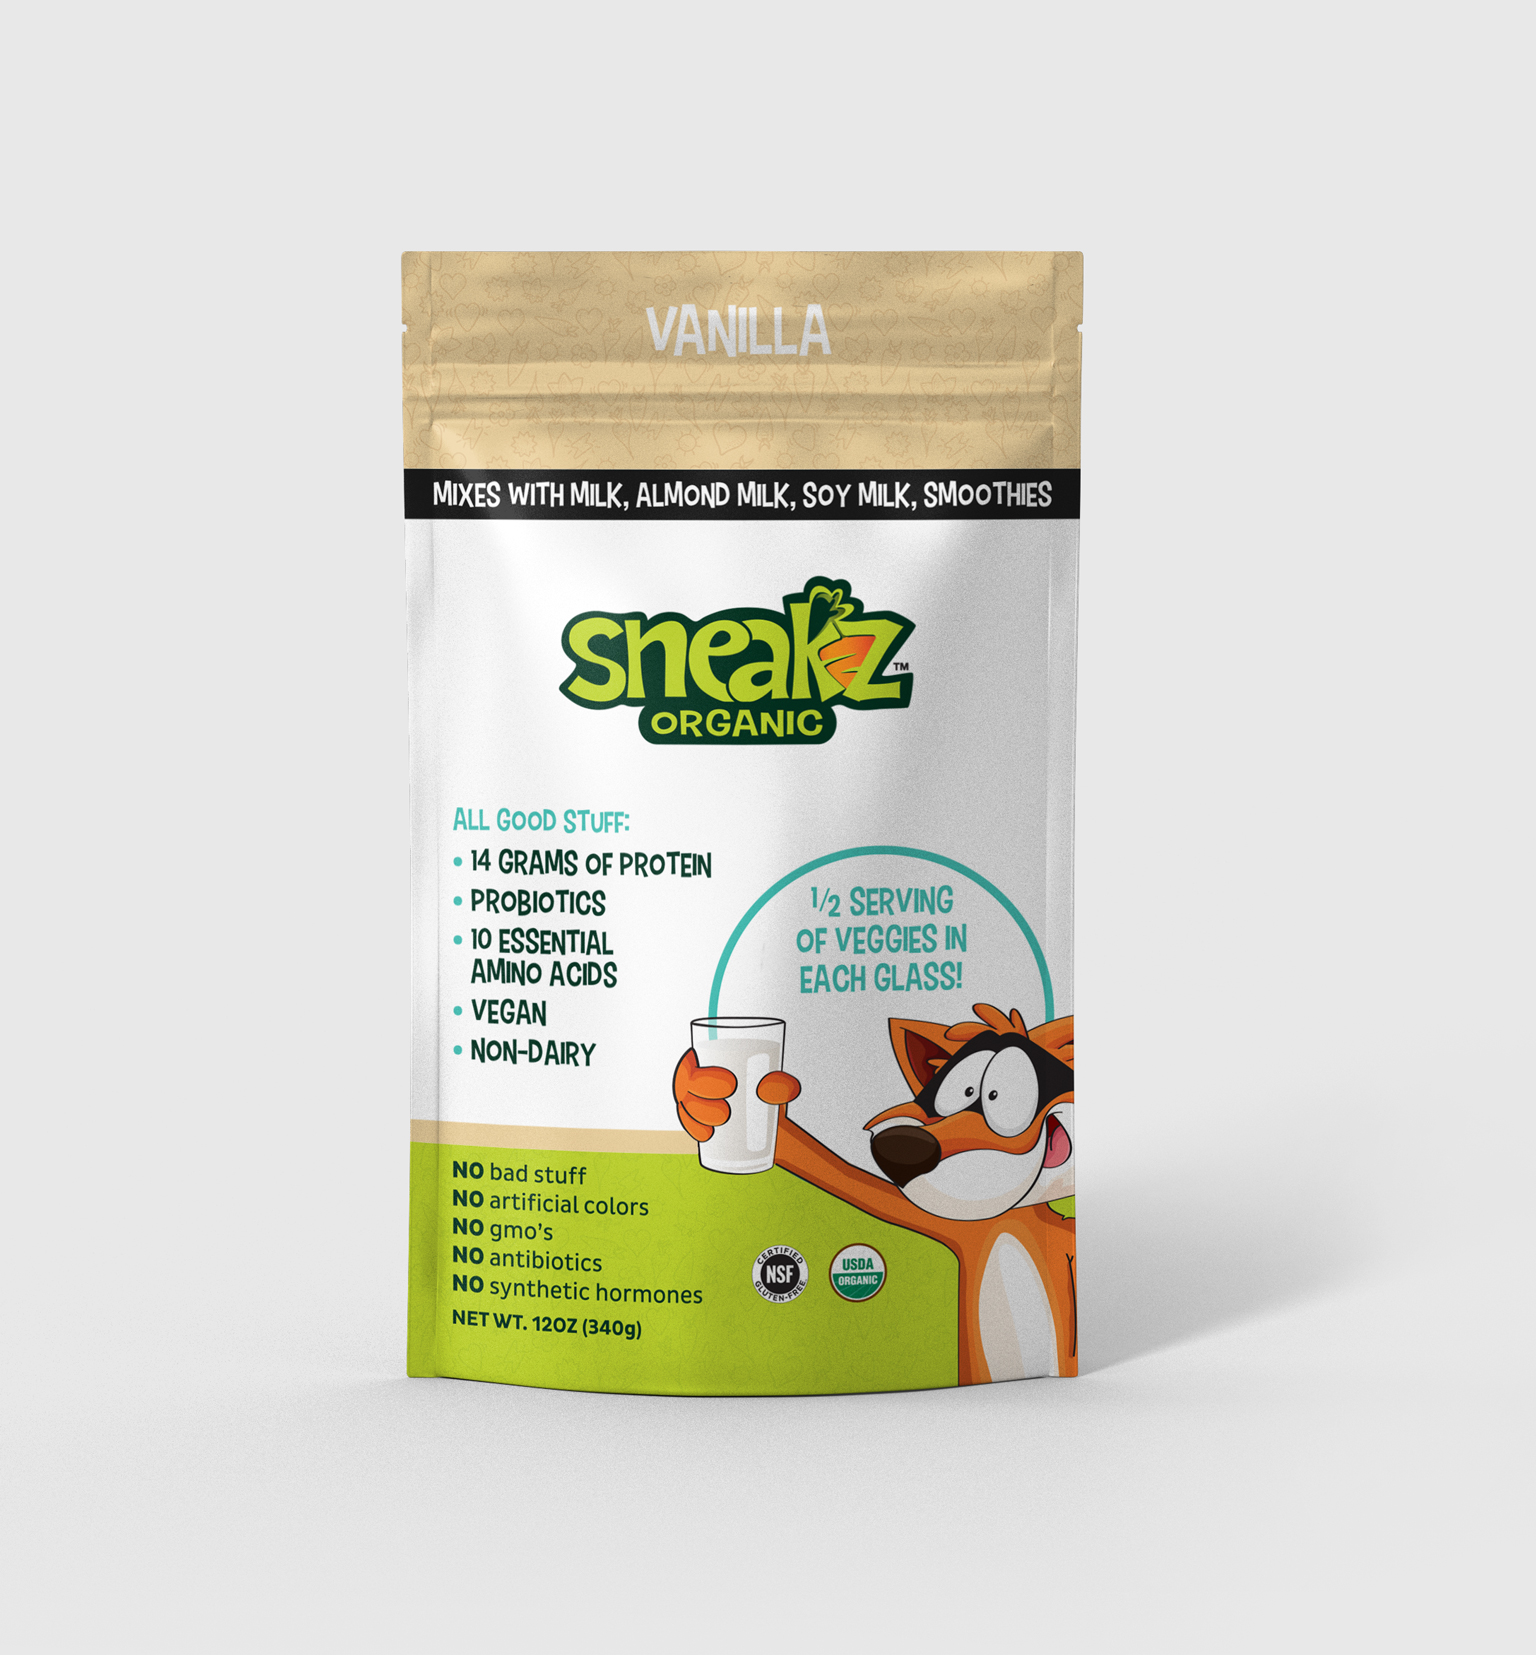 Sneakz Organic: Vegan Protein Powder and Drink Mix